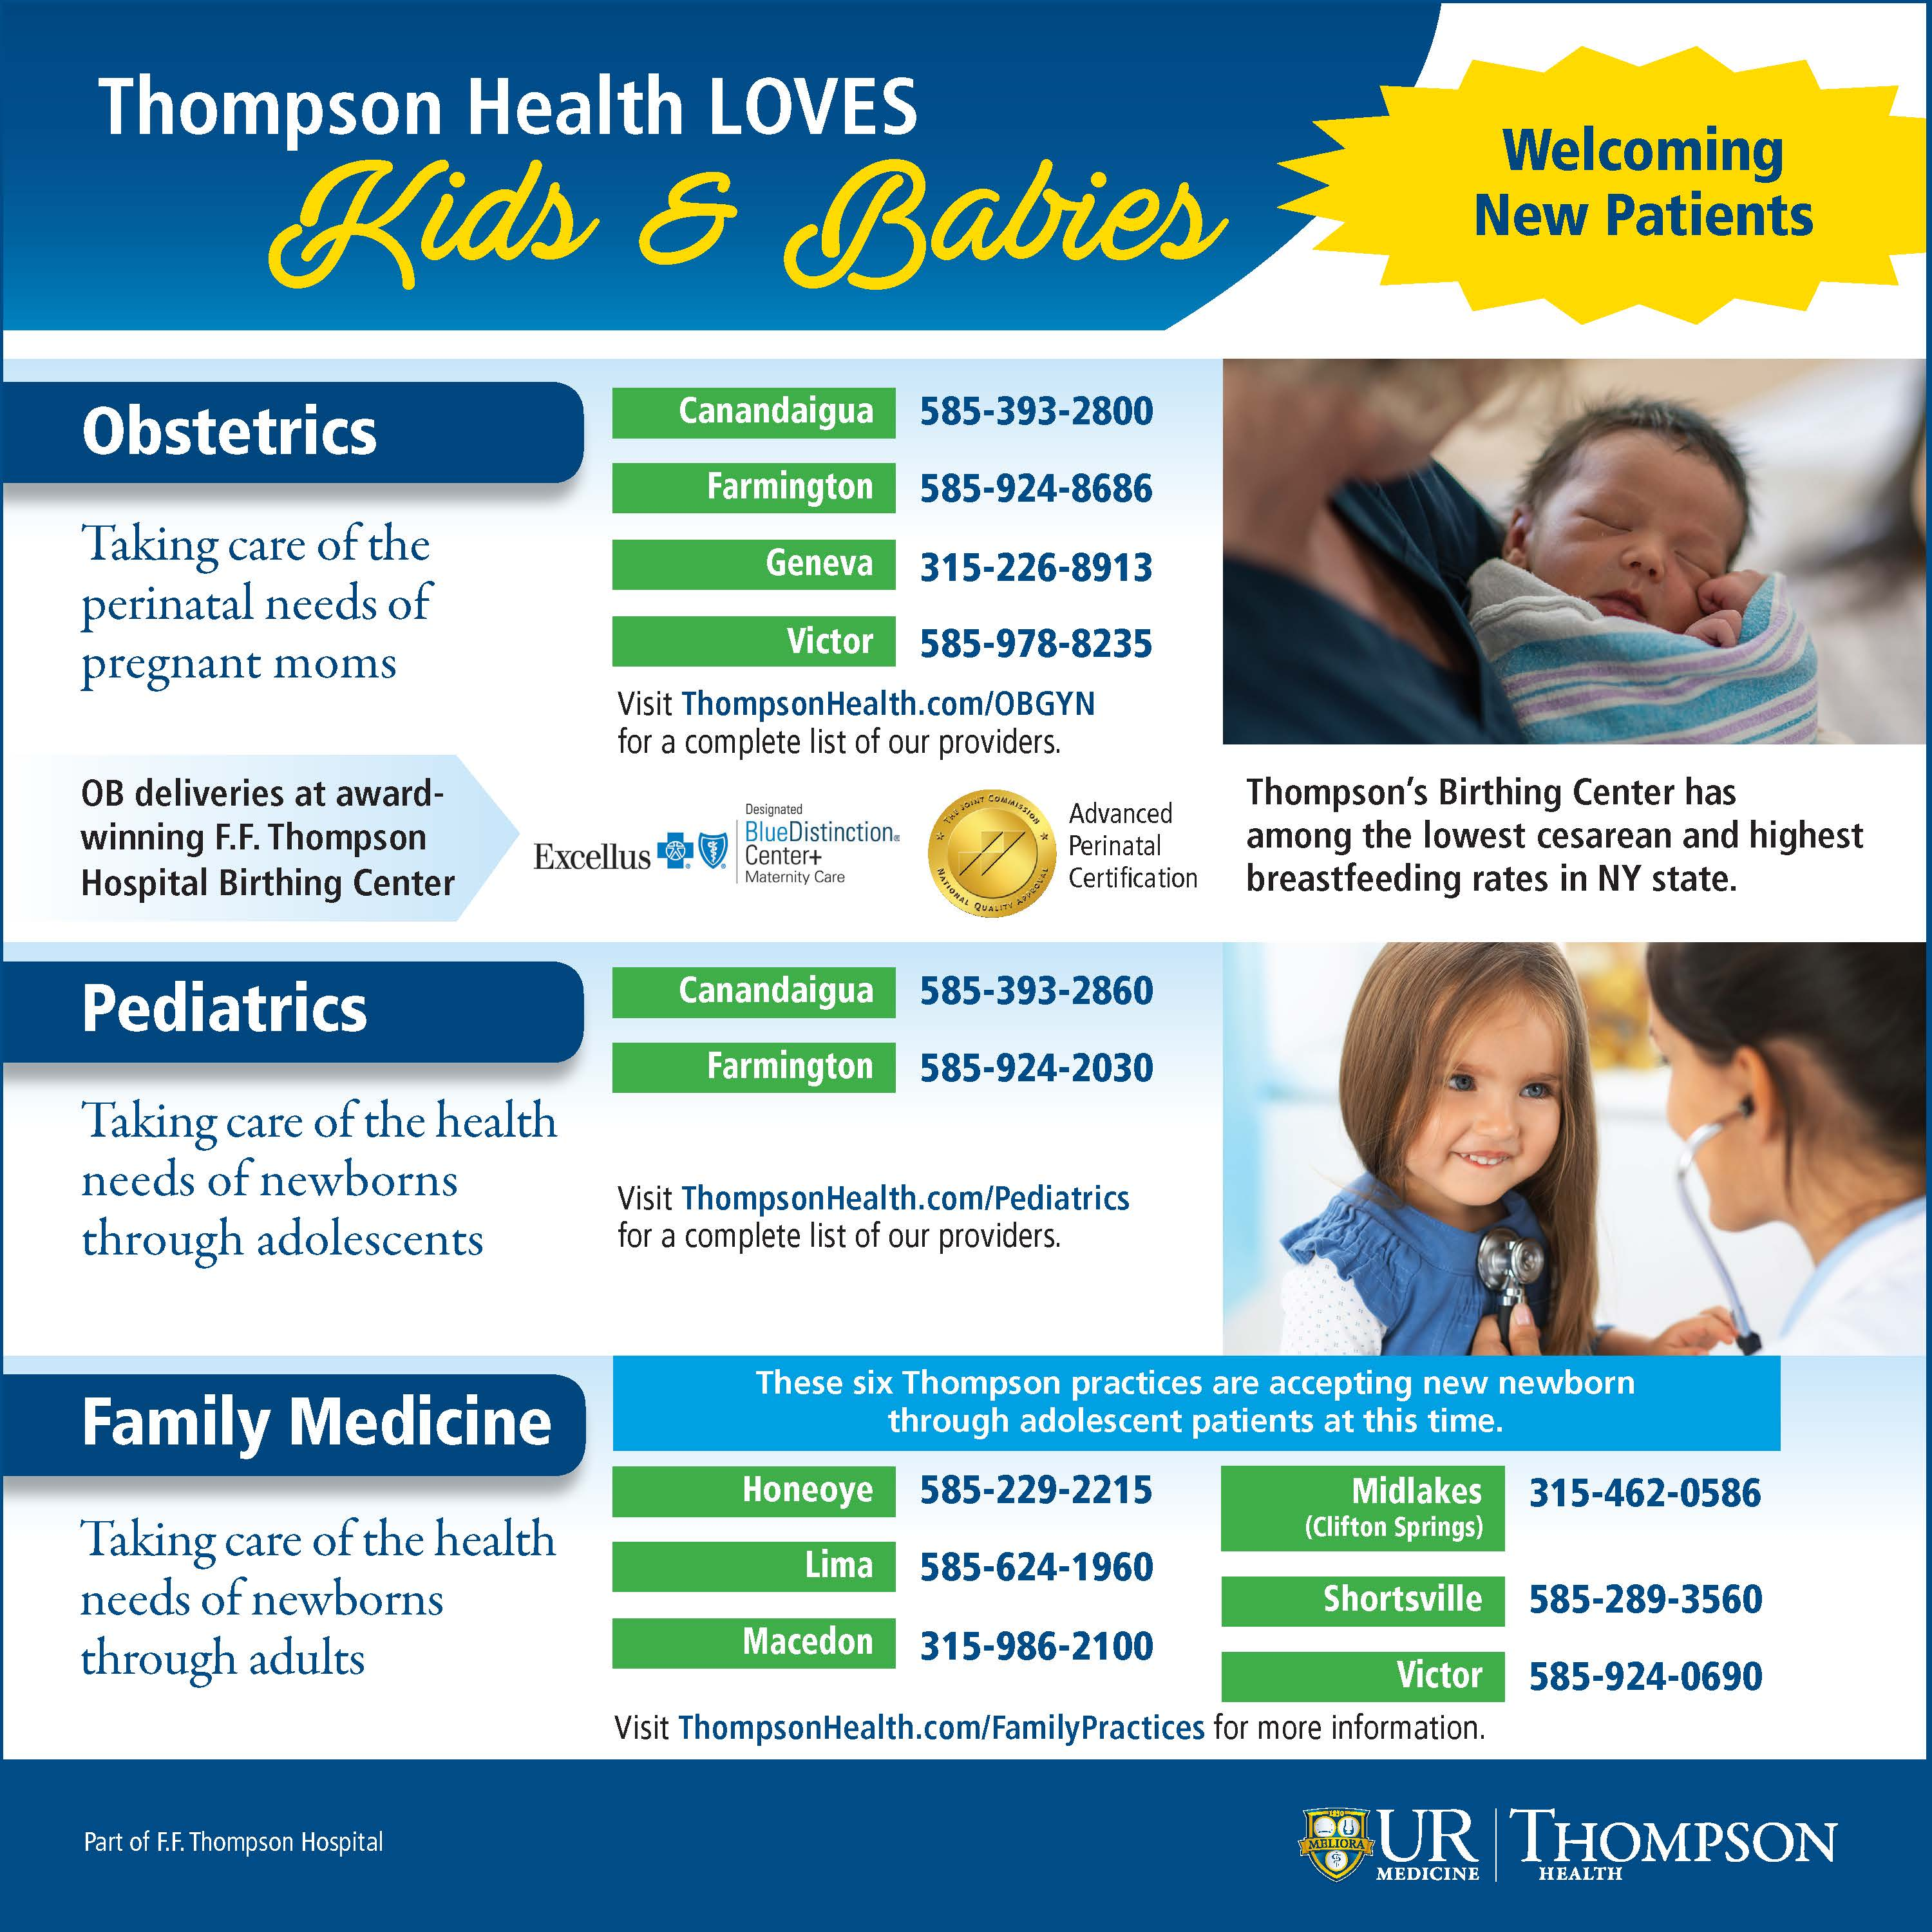 Thompson Health LOVES Kids & Babies. Obstetrics - taking care of the perinatal needs of moms; Pediatrics - taking care of the health needs of newborns through adolescents; Family Medicine - Taking care of the needs of newborns through adults